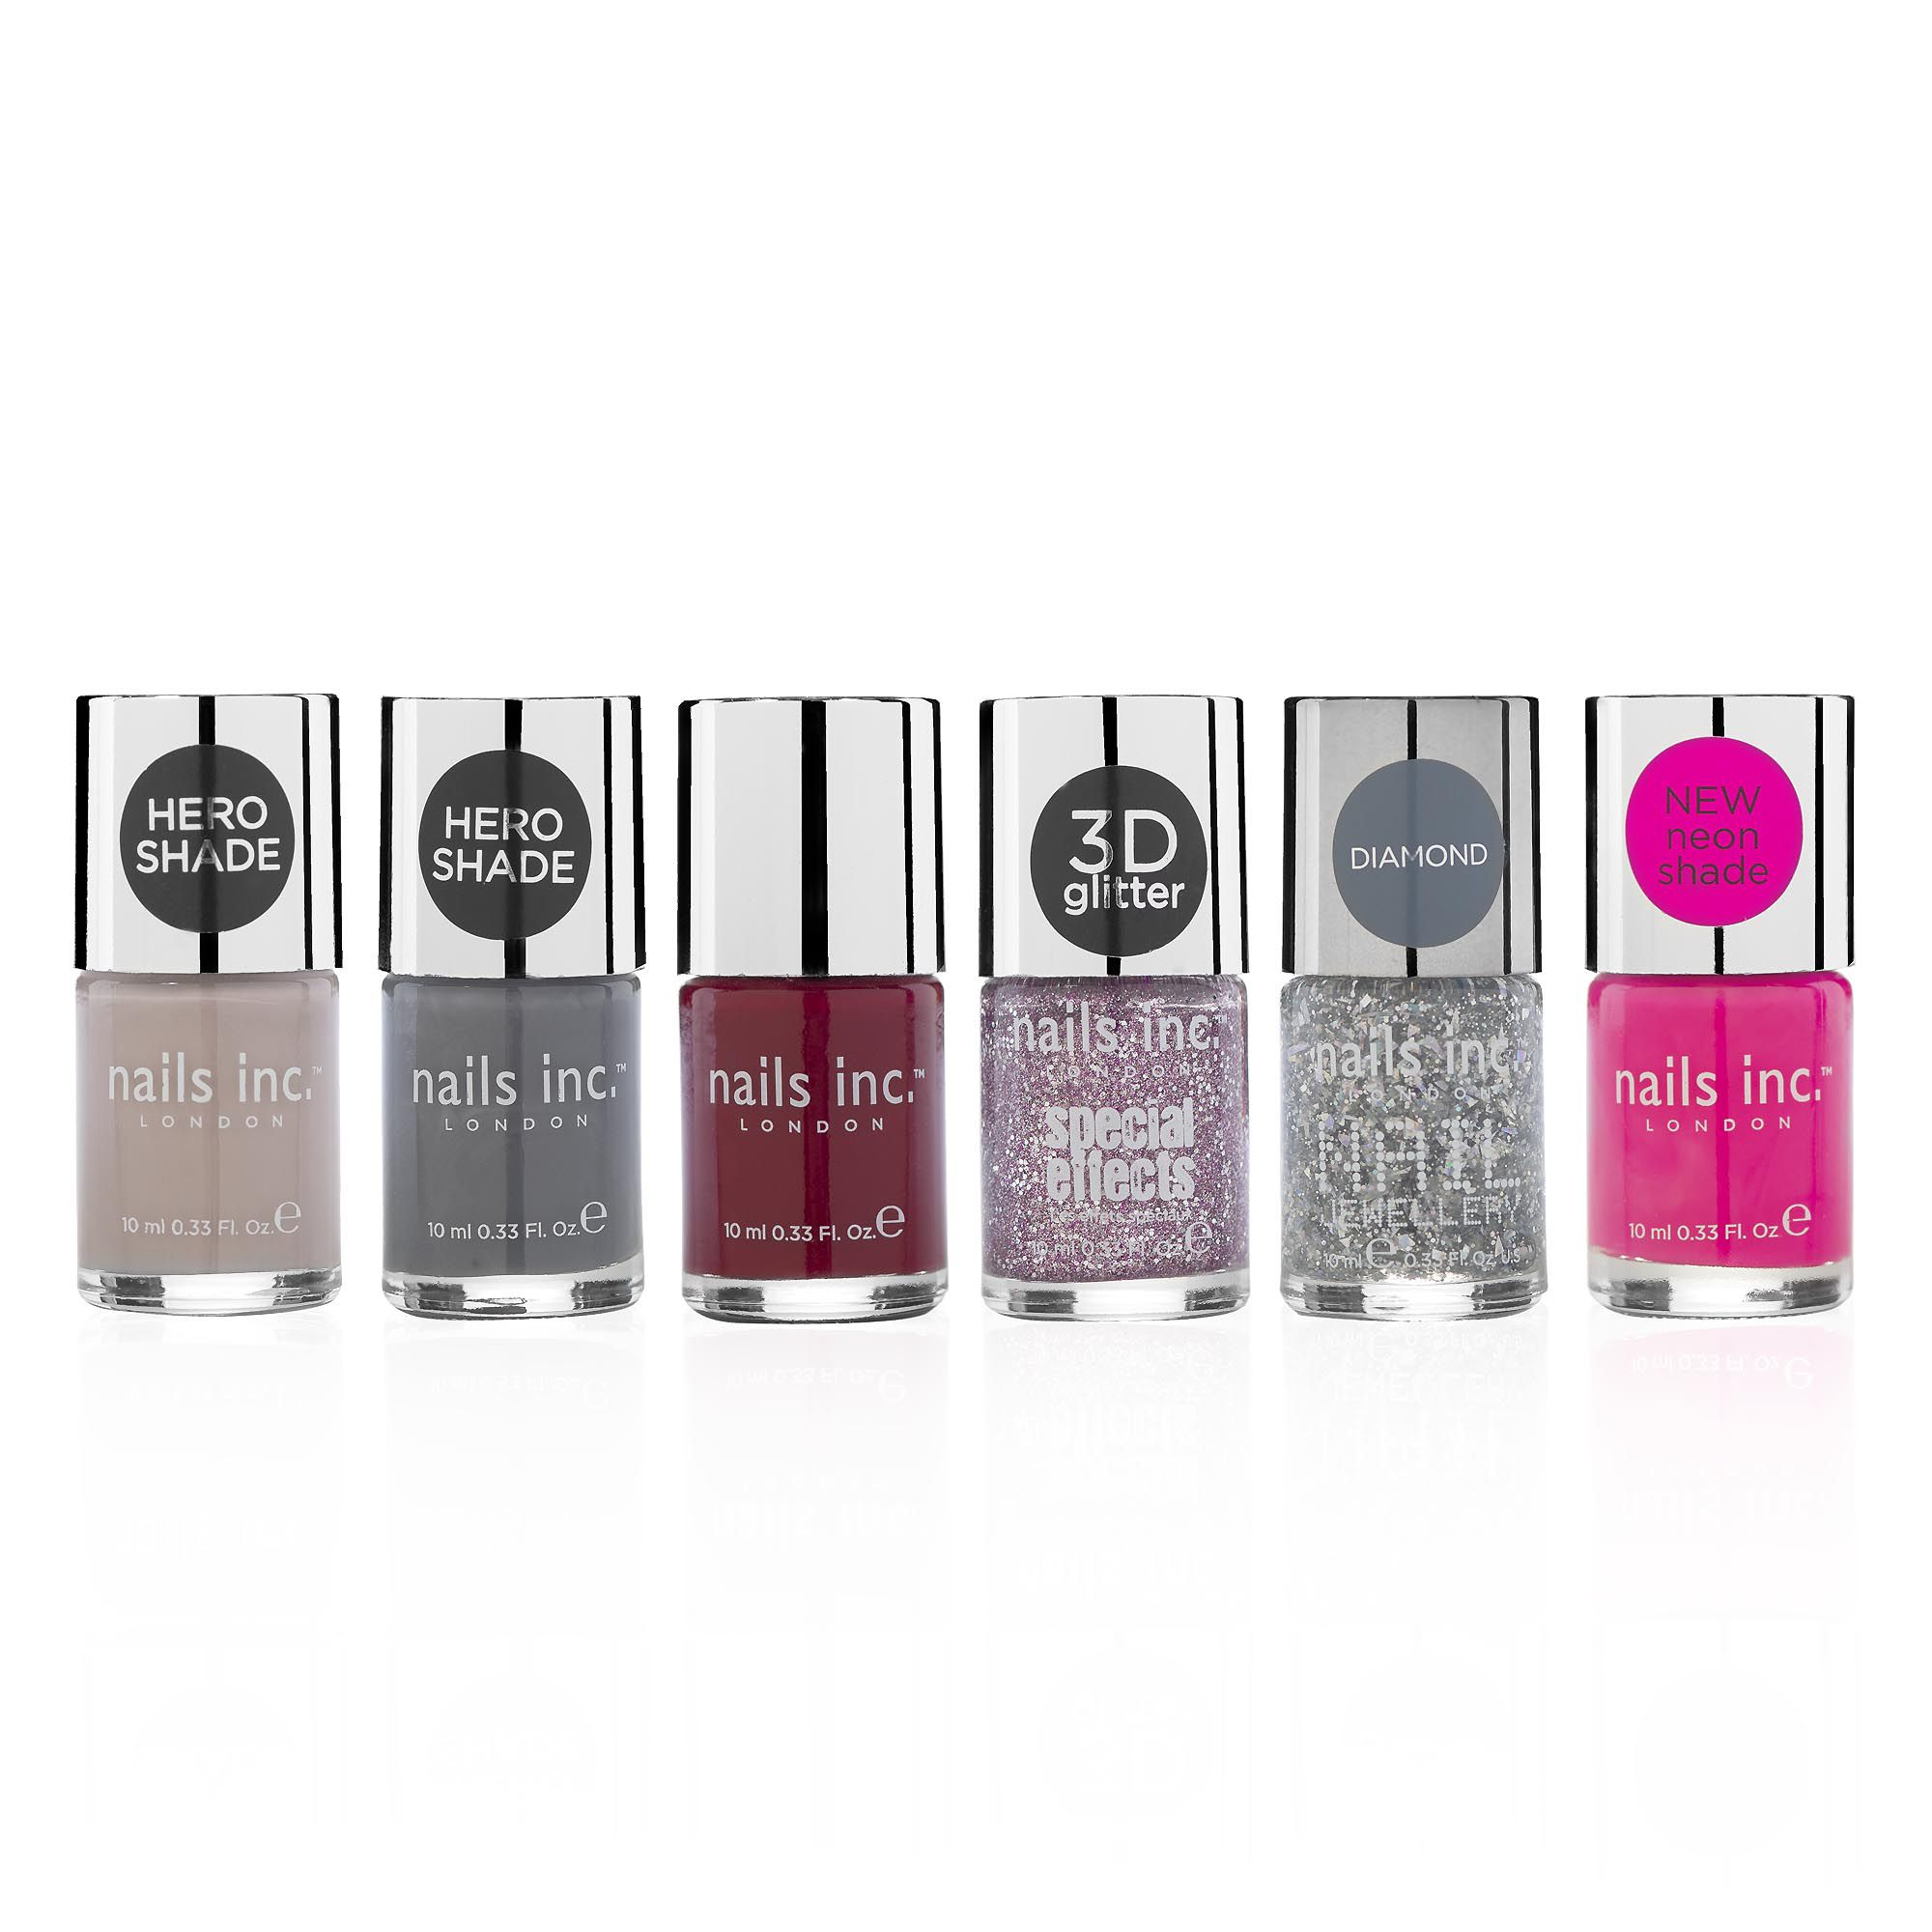 Nails inc. I Best Sellers: kit smalti colori ultrabrillanti da passerella (6 pz)